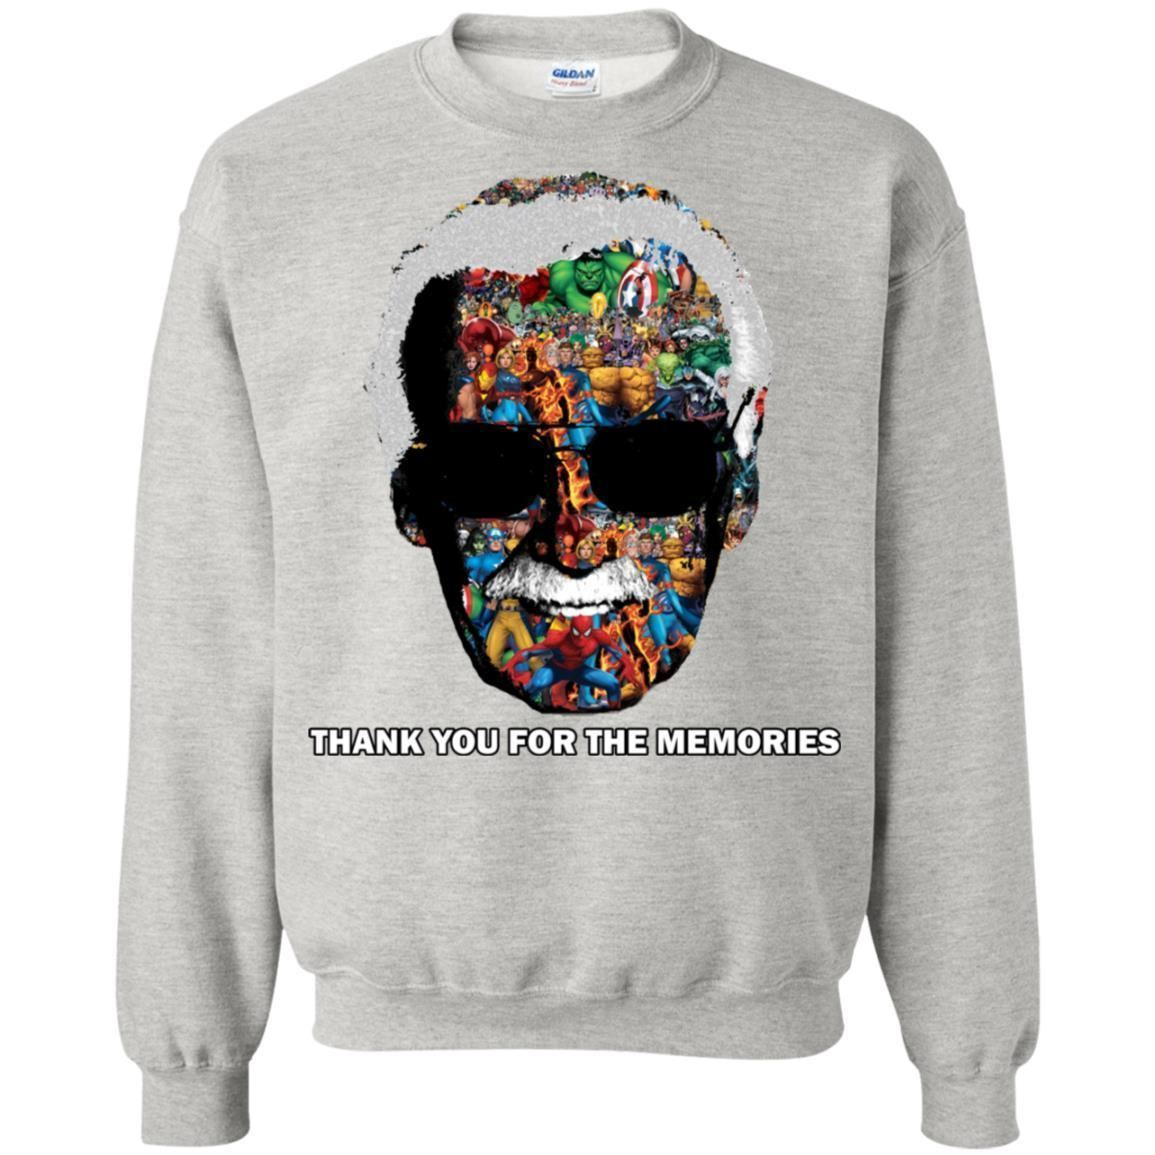 Thank You For The Memories Tee Shirt  - Inspired By Stan Lee Sweatshirt - Super